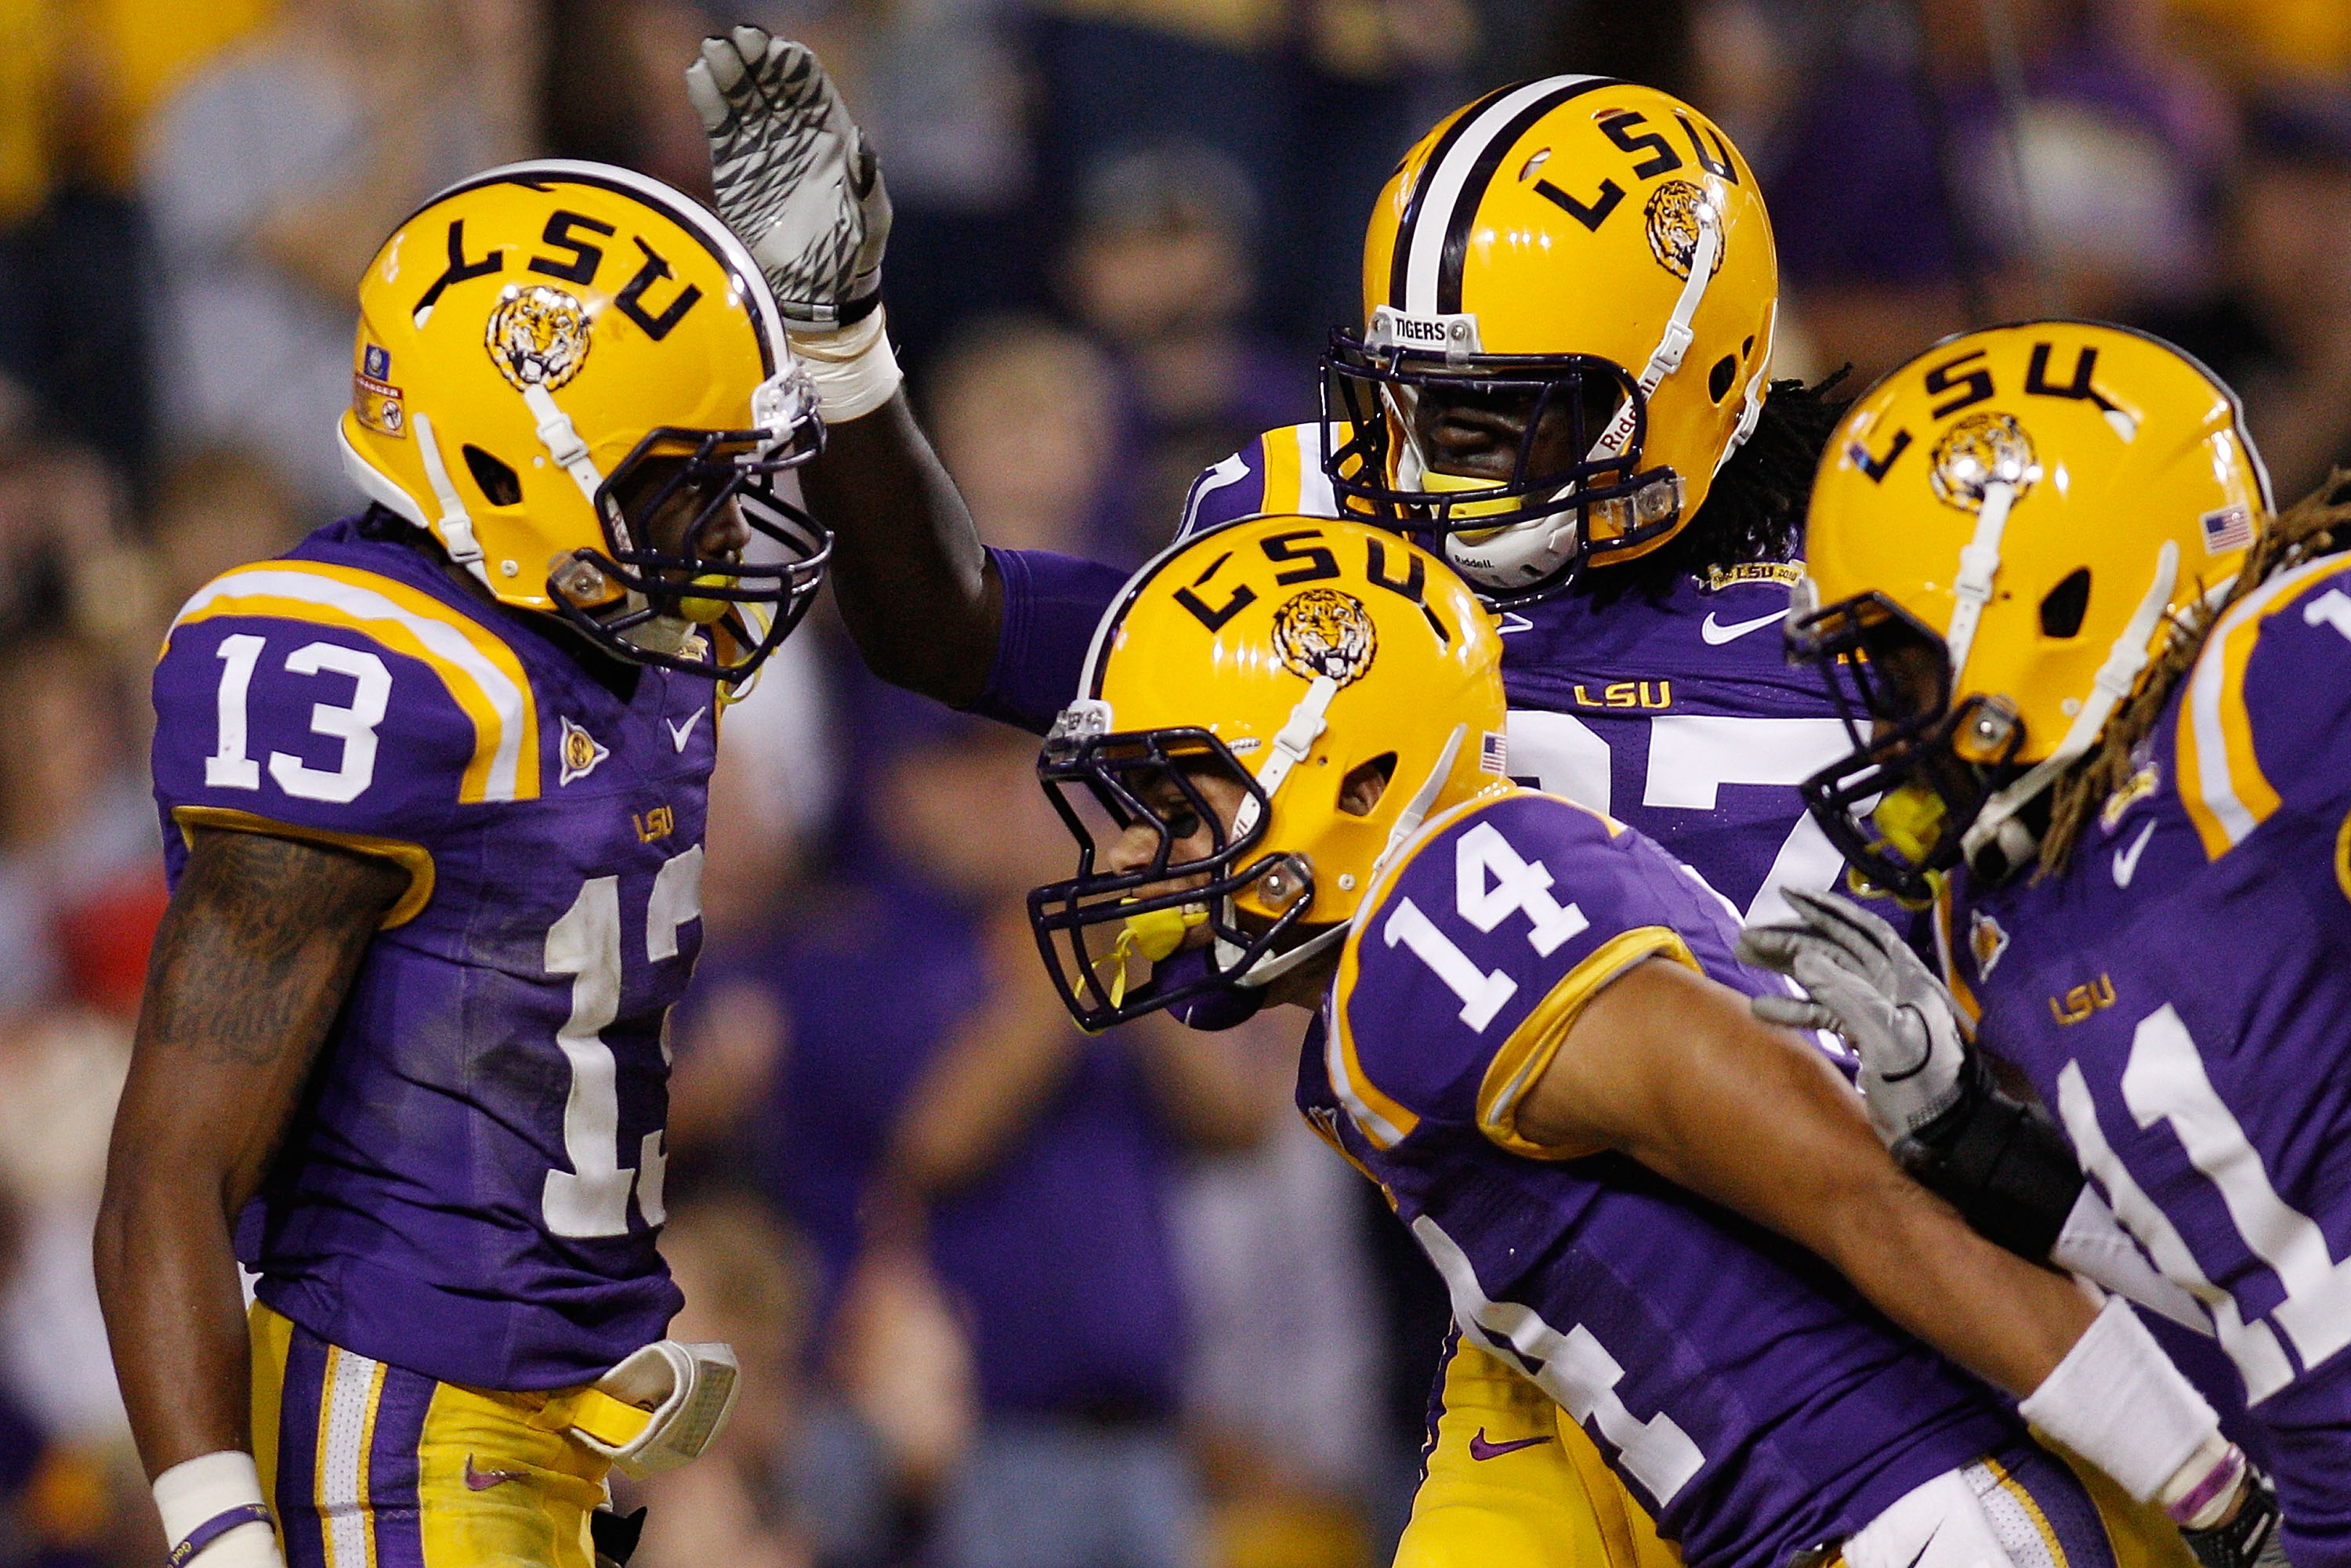 BATON ROUGE, LA - NOVEMBER 13:  Ron Brooks #13 of the Louisiana State University Tigers celebrates after scoring a touchdown on an interception during the game against the University of Louisiana-Monroe Warhawks at Tiger Stadium on November 13, 2010 in Ba